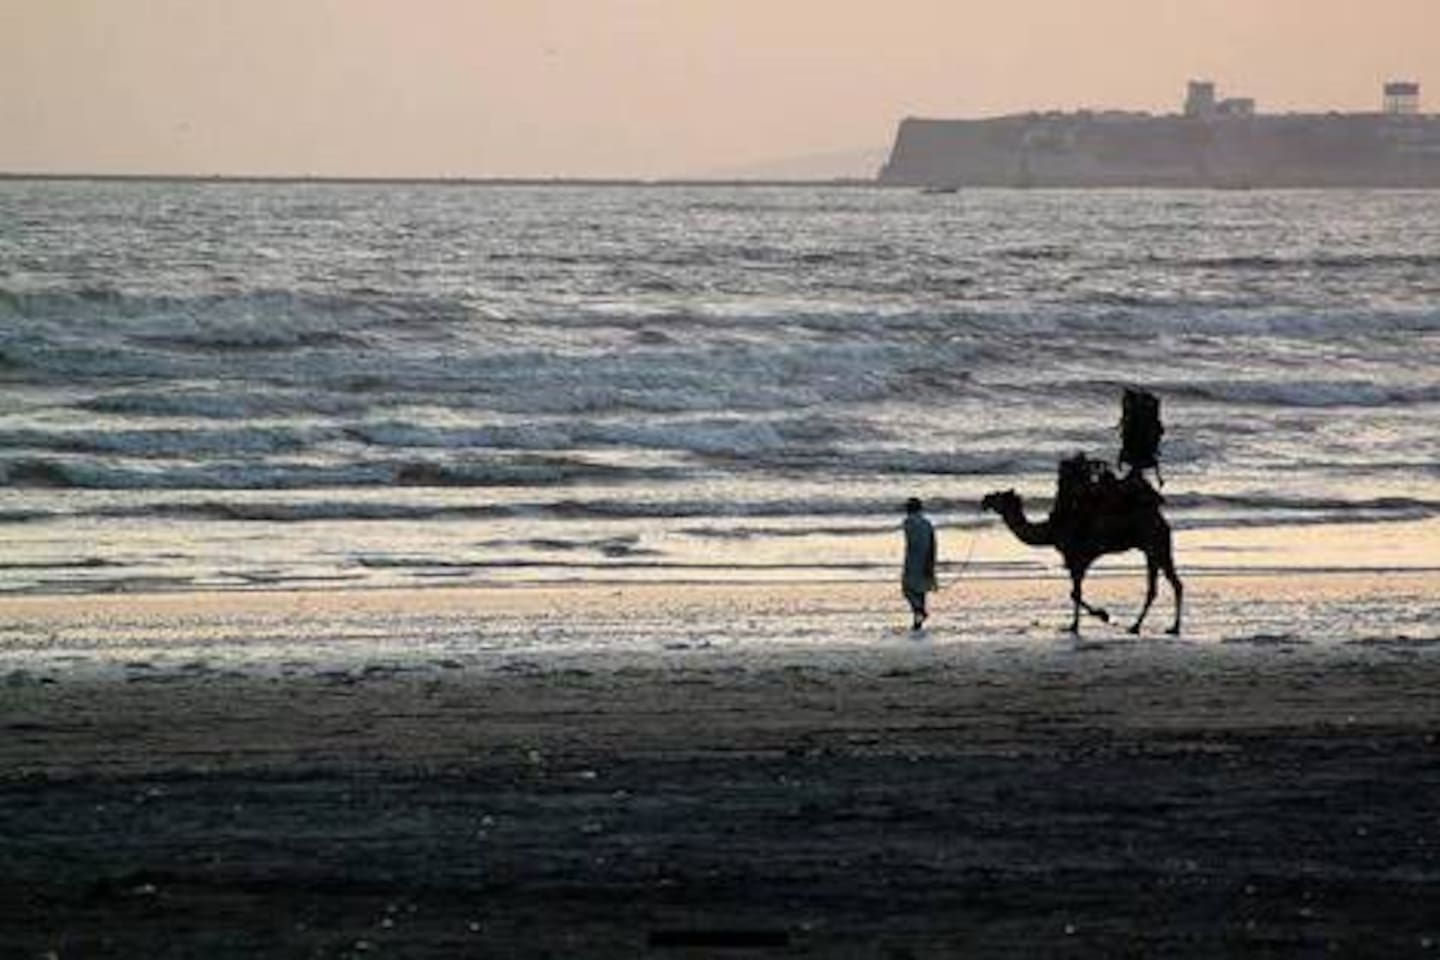 Karachi sea view is just 2 mins walk from this place